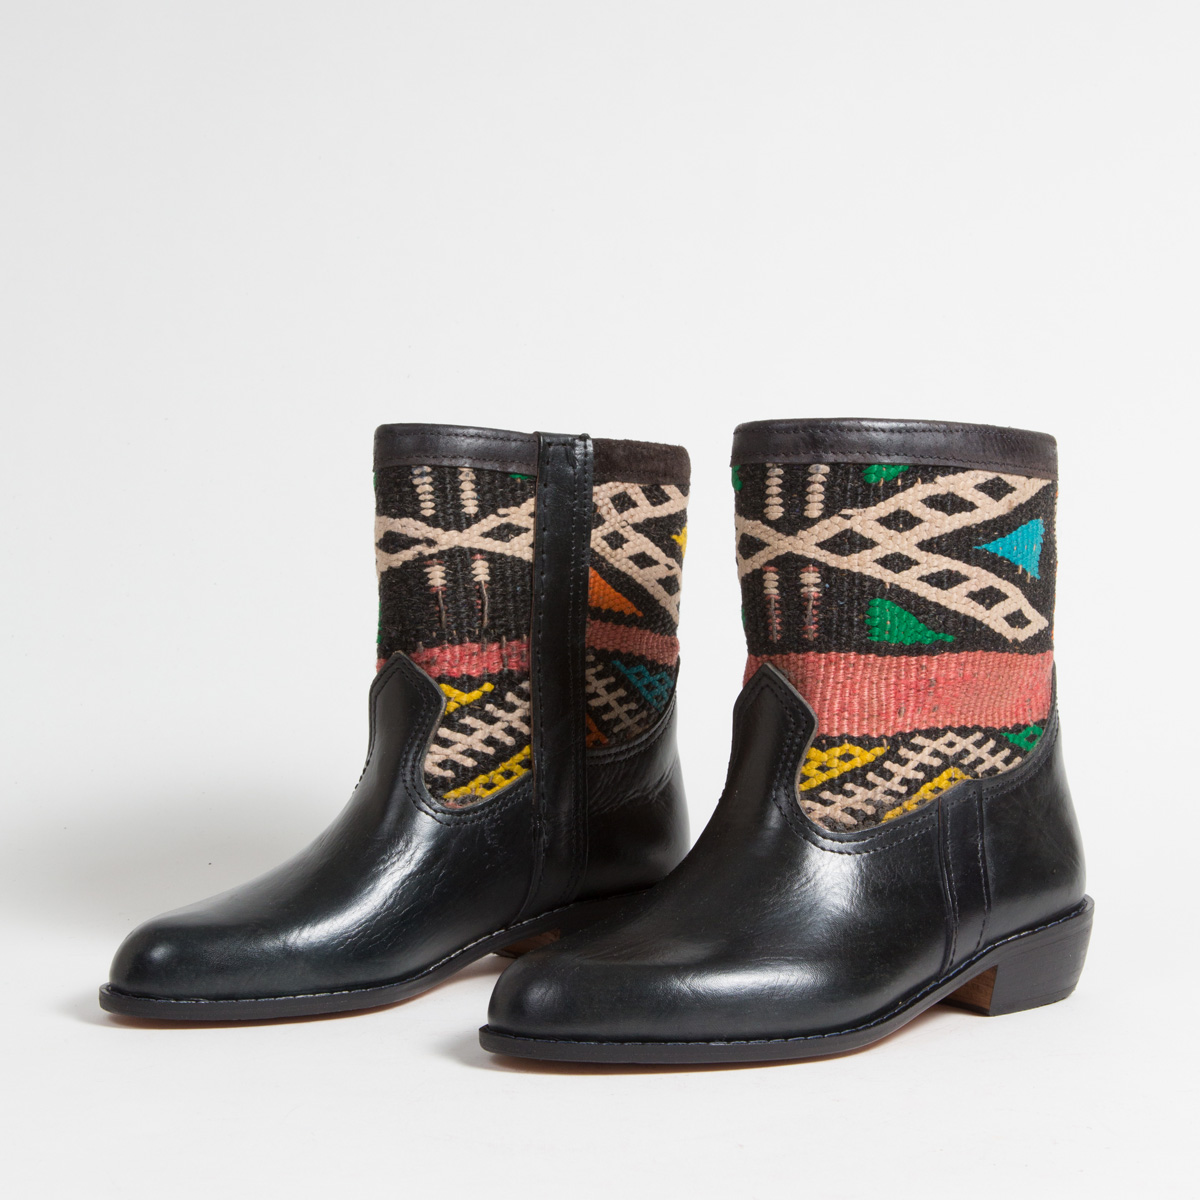 Bottines Kilim cuir mababouche artisanales (Réf. LOCN1-39)